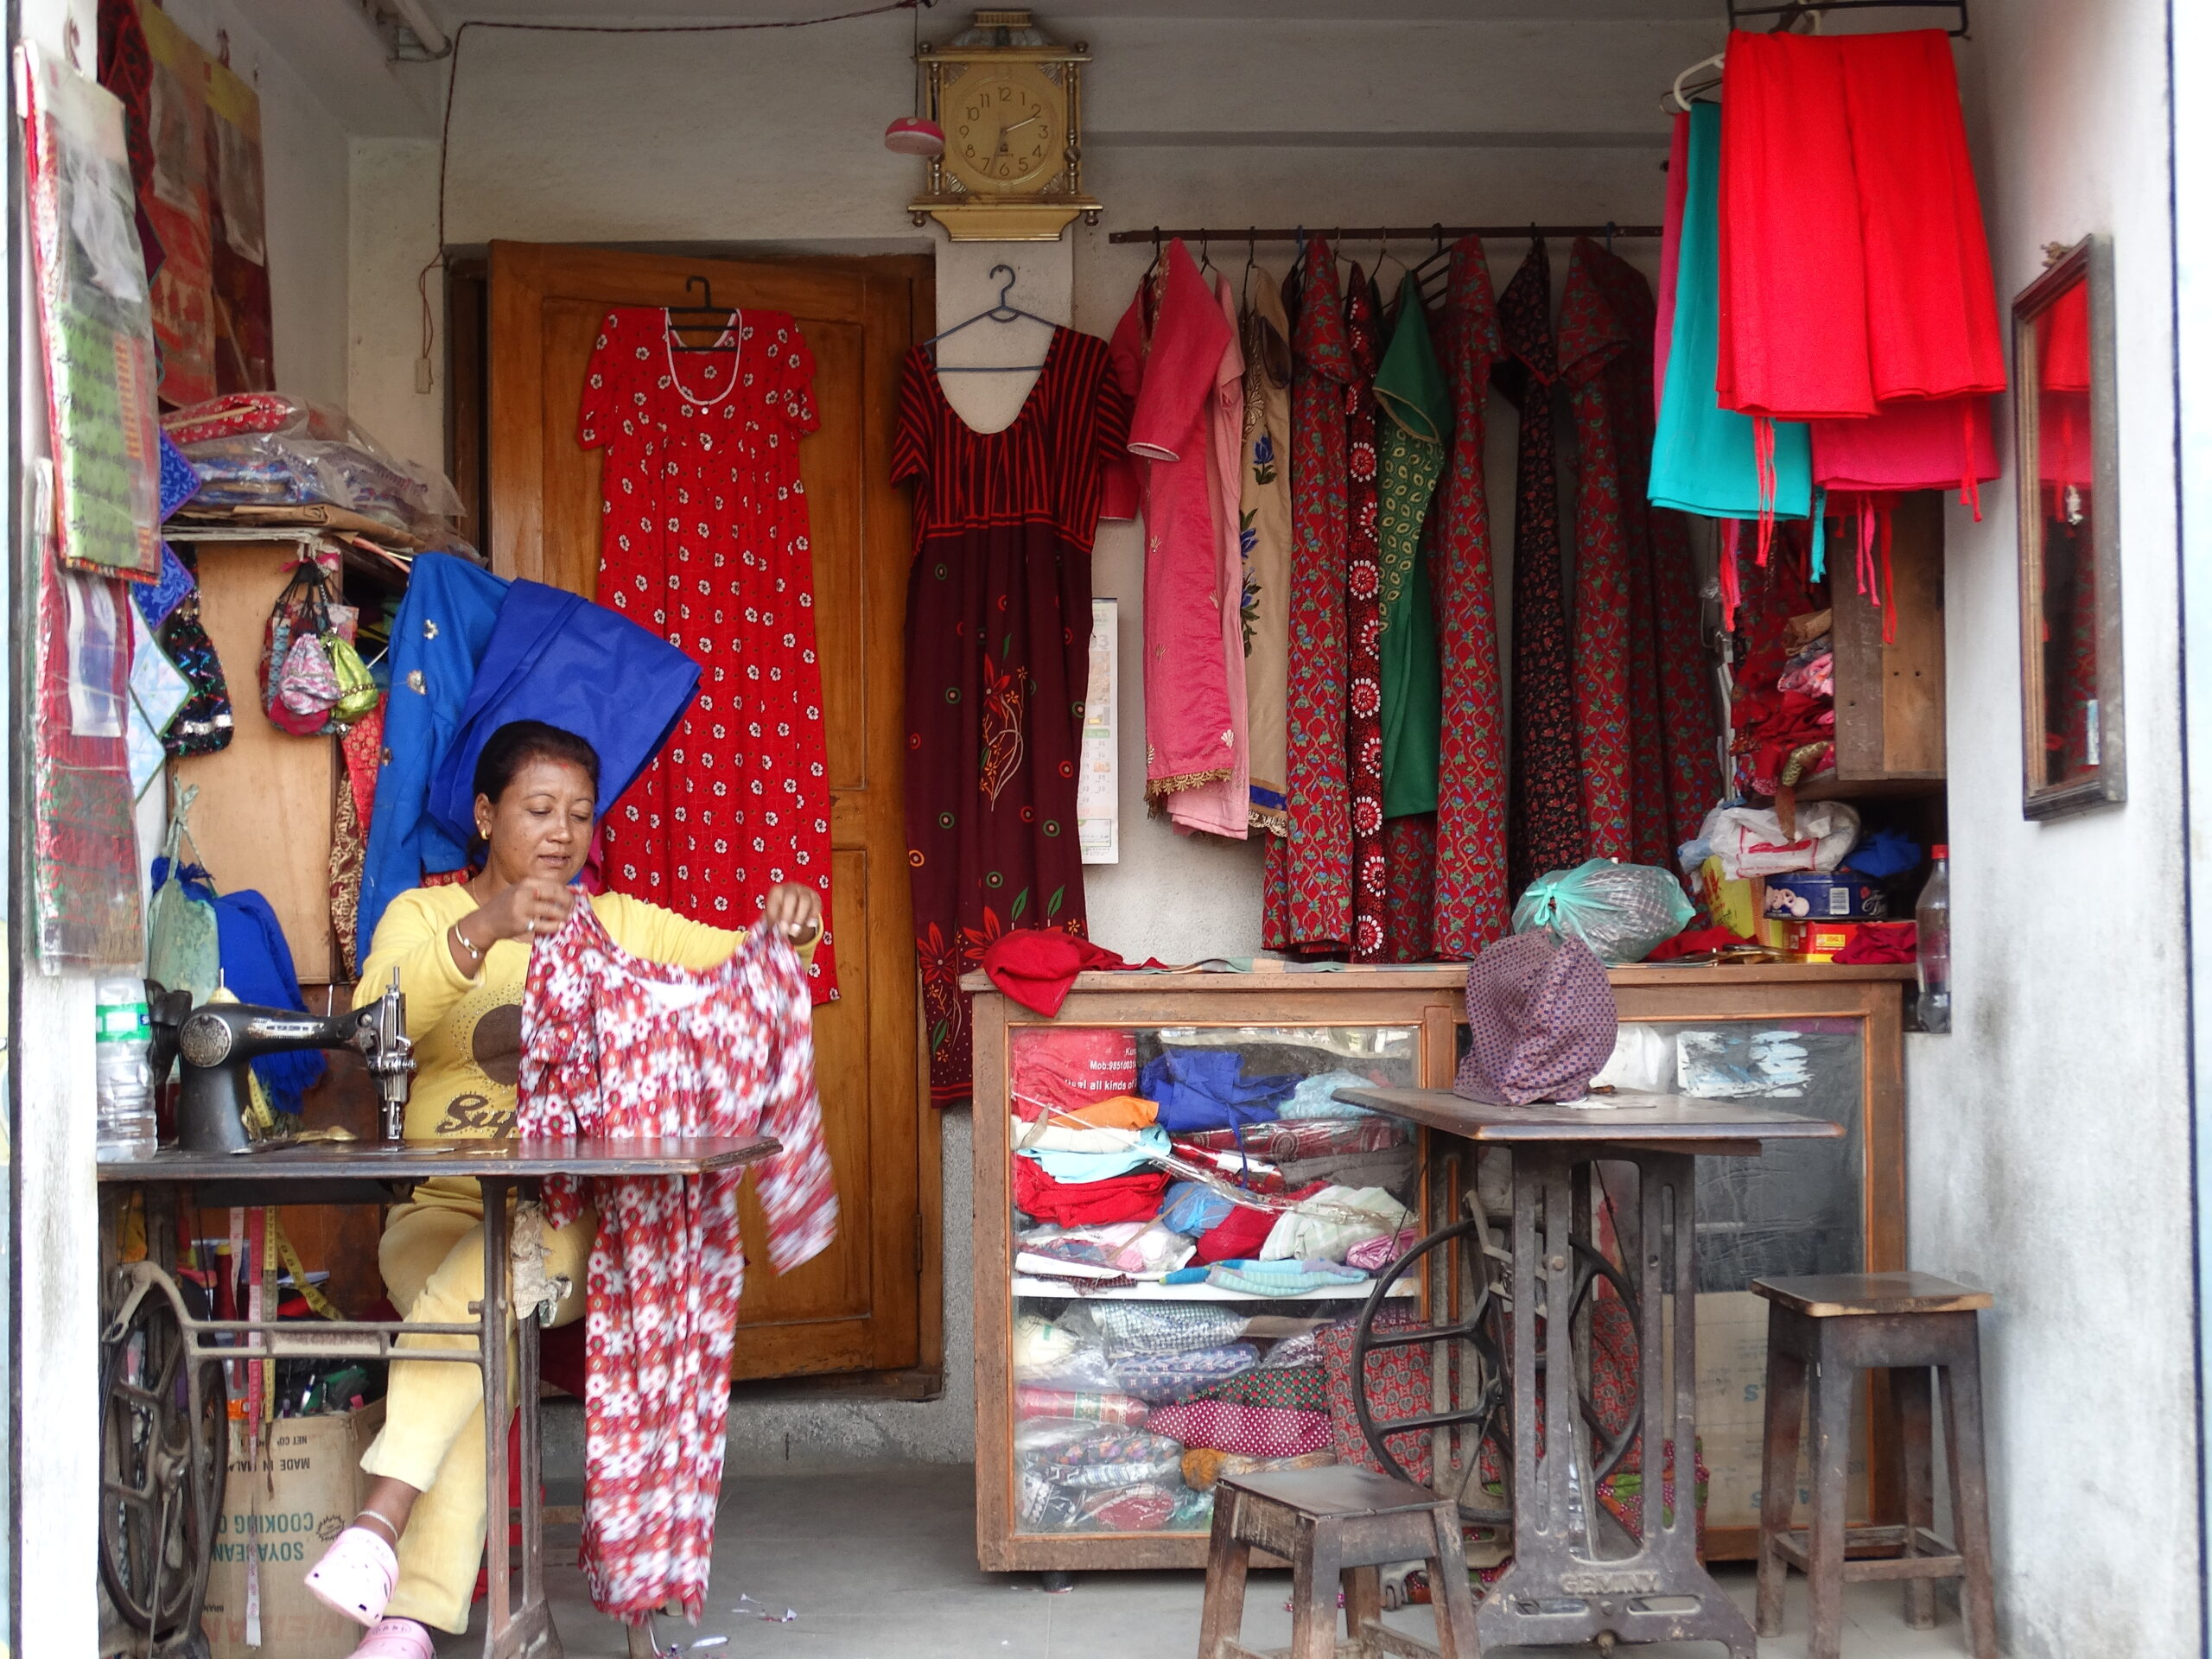 Visiting a Dressmaker in Patan